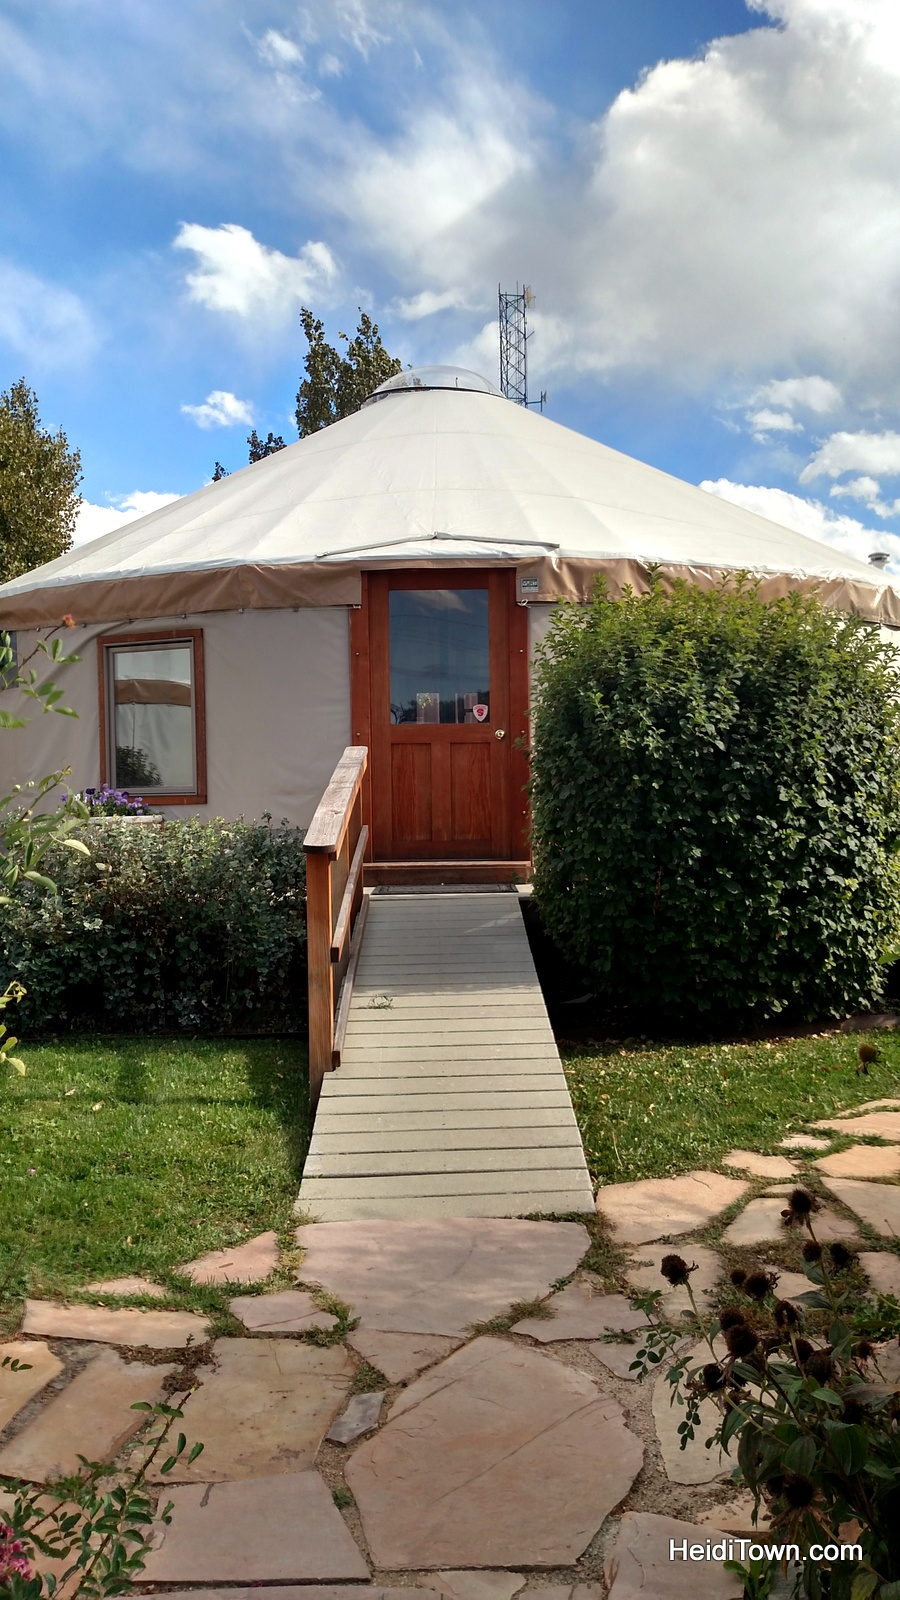 Colorado Yurt Company in Montrose, Colorado. HeidiTown.com